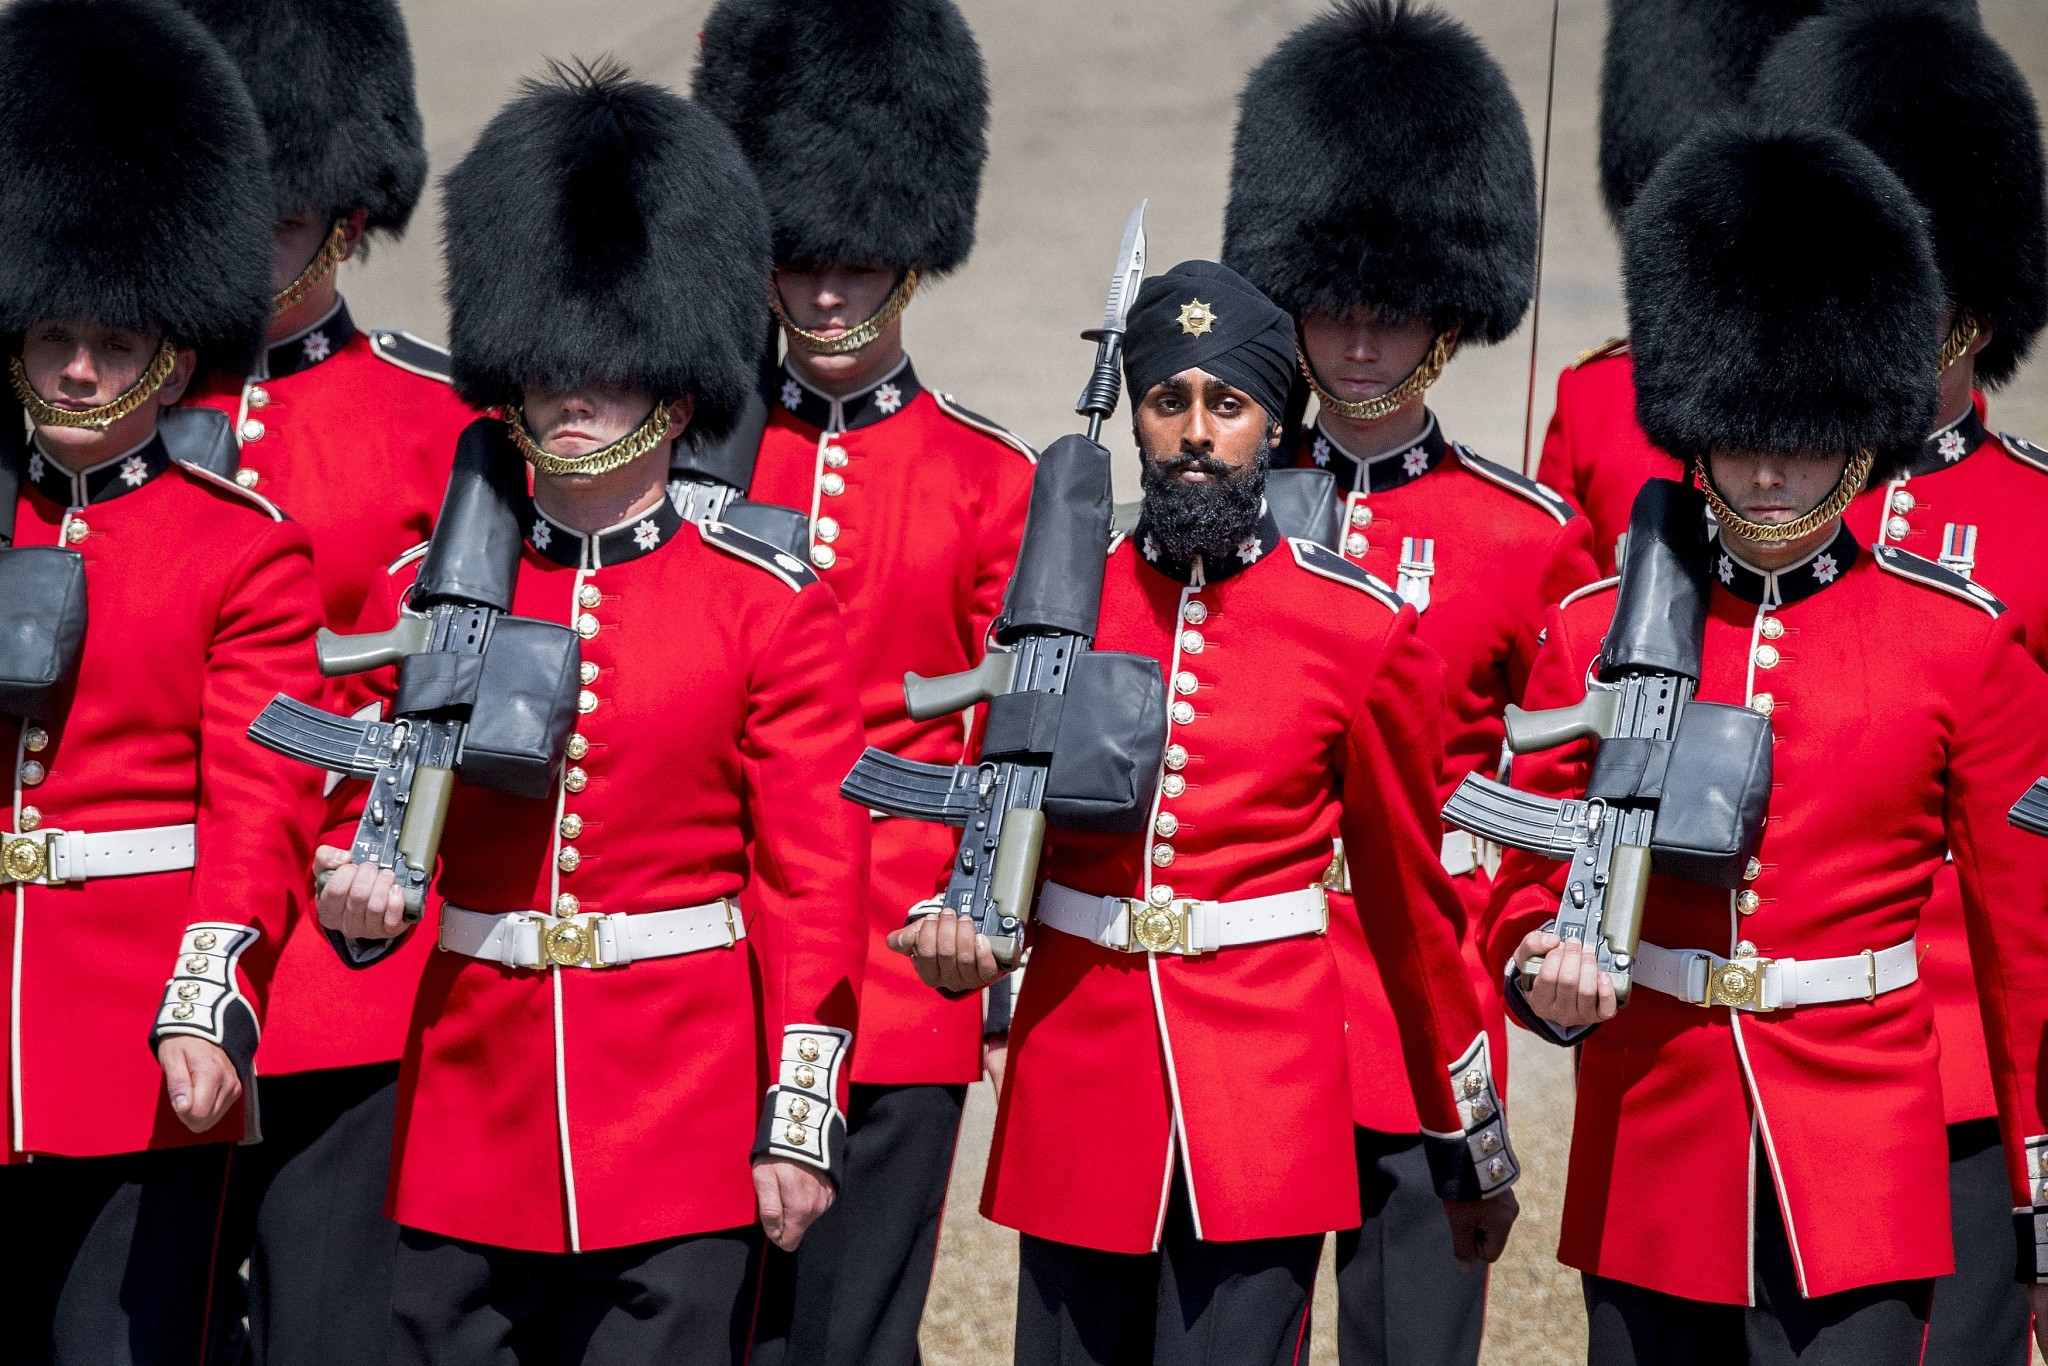 Charanpreet Singh Lall second right one of the Coldstream Guards marches during the Trooping the Colour ceremony at Horse Guards Parade as Queen Elizabeth II celebrates her official birthday in London